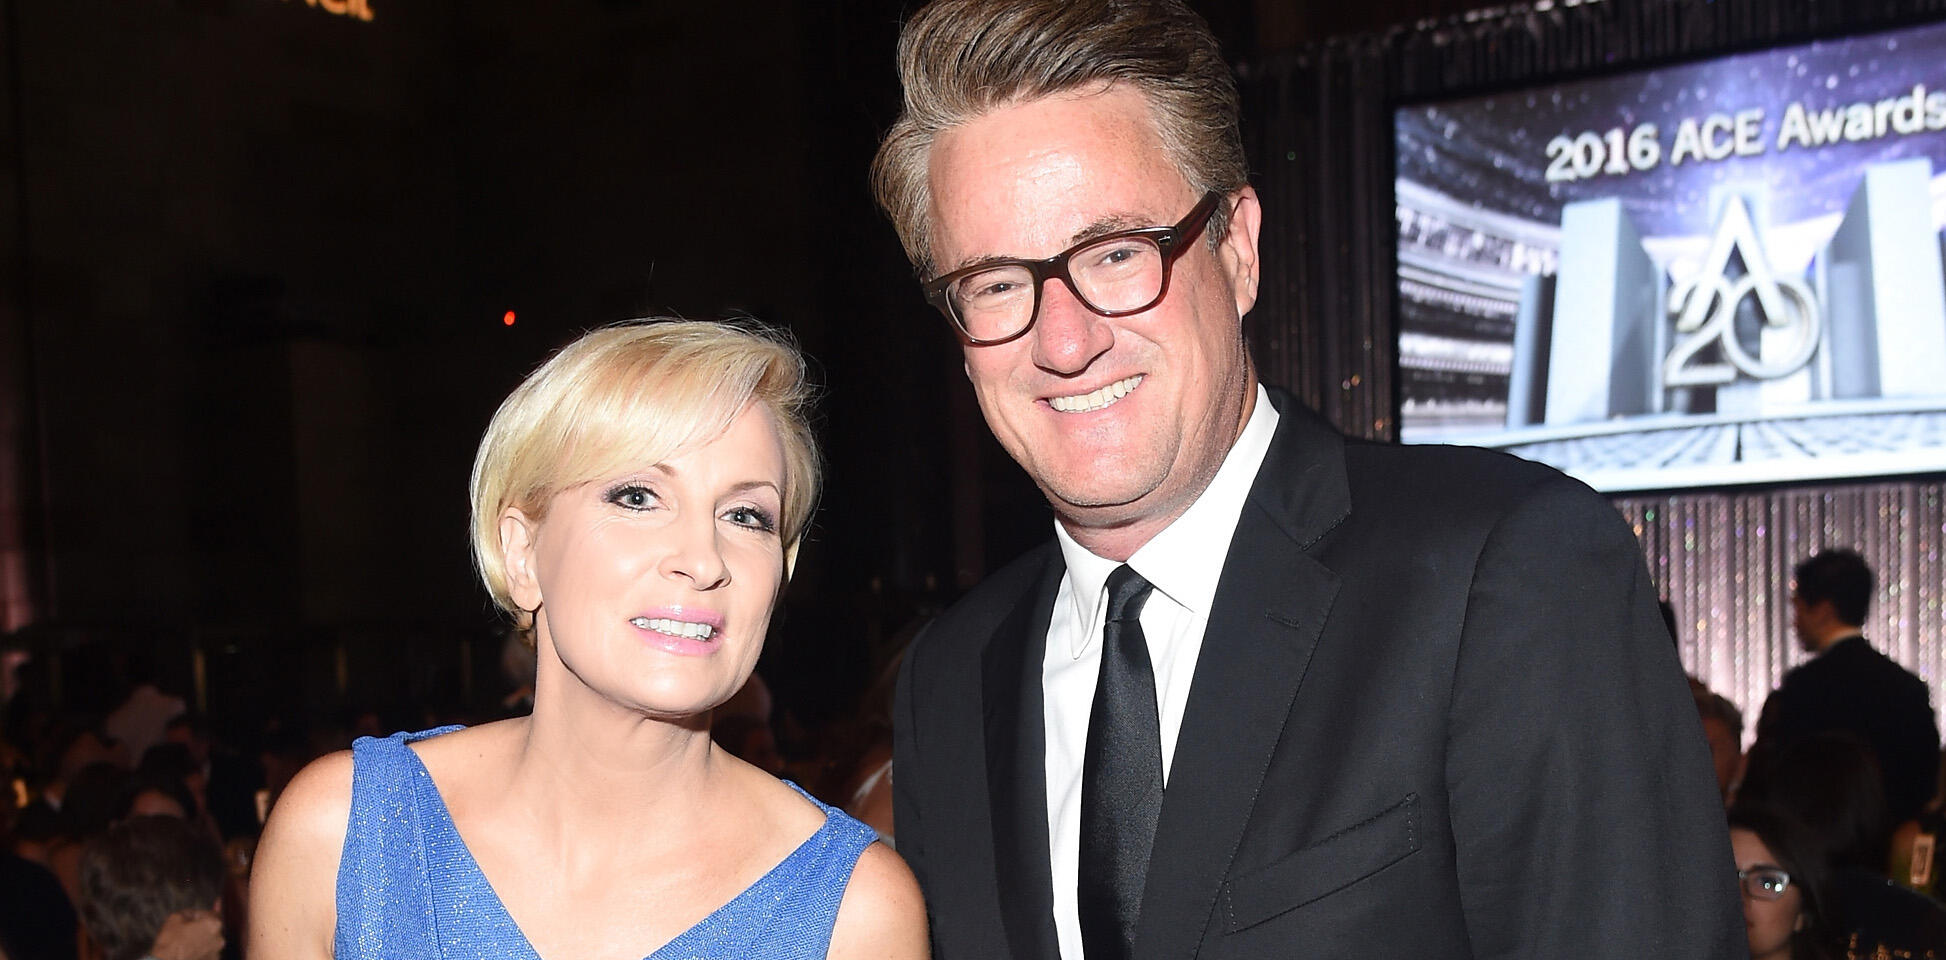 NEW YORK, NY - AUGUST 02:  Televsion hosts Mika Brzezinski (L) and Joe Scarborough attend the Accessories Council 20th Anniversary celebration of the ACE awards at Cipriani 42nd Street on August 2, 2016 in New York City.  (Photo by Michael Loccisano/Getty Images for Accessories Council)